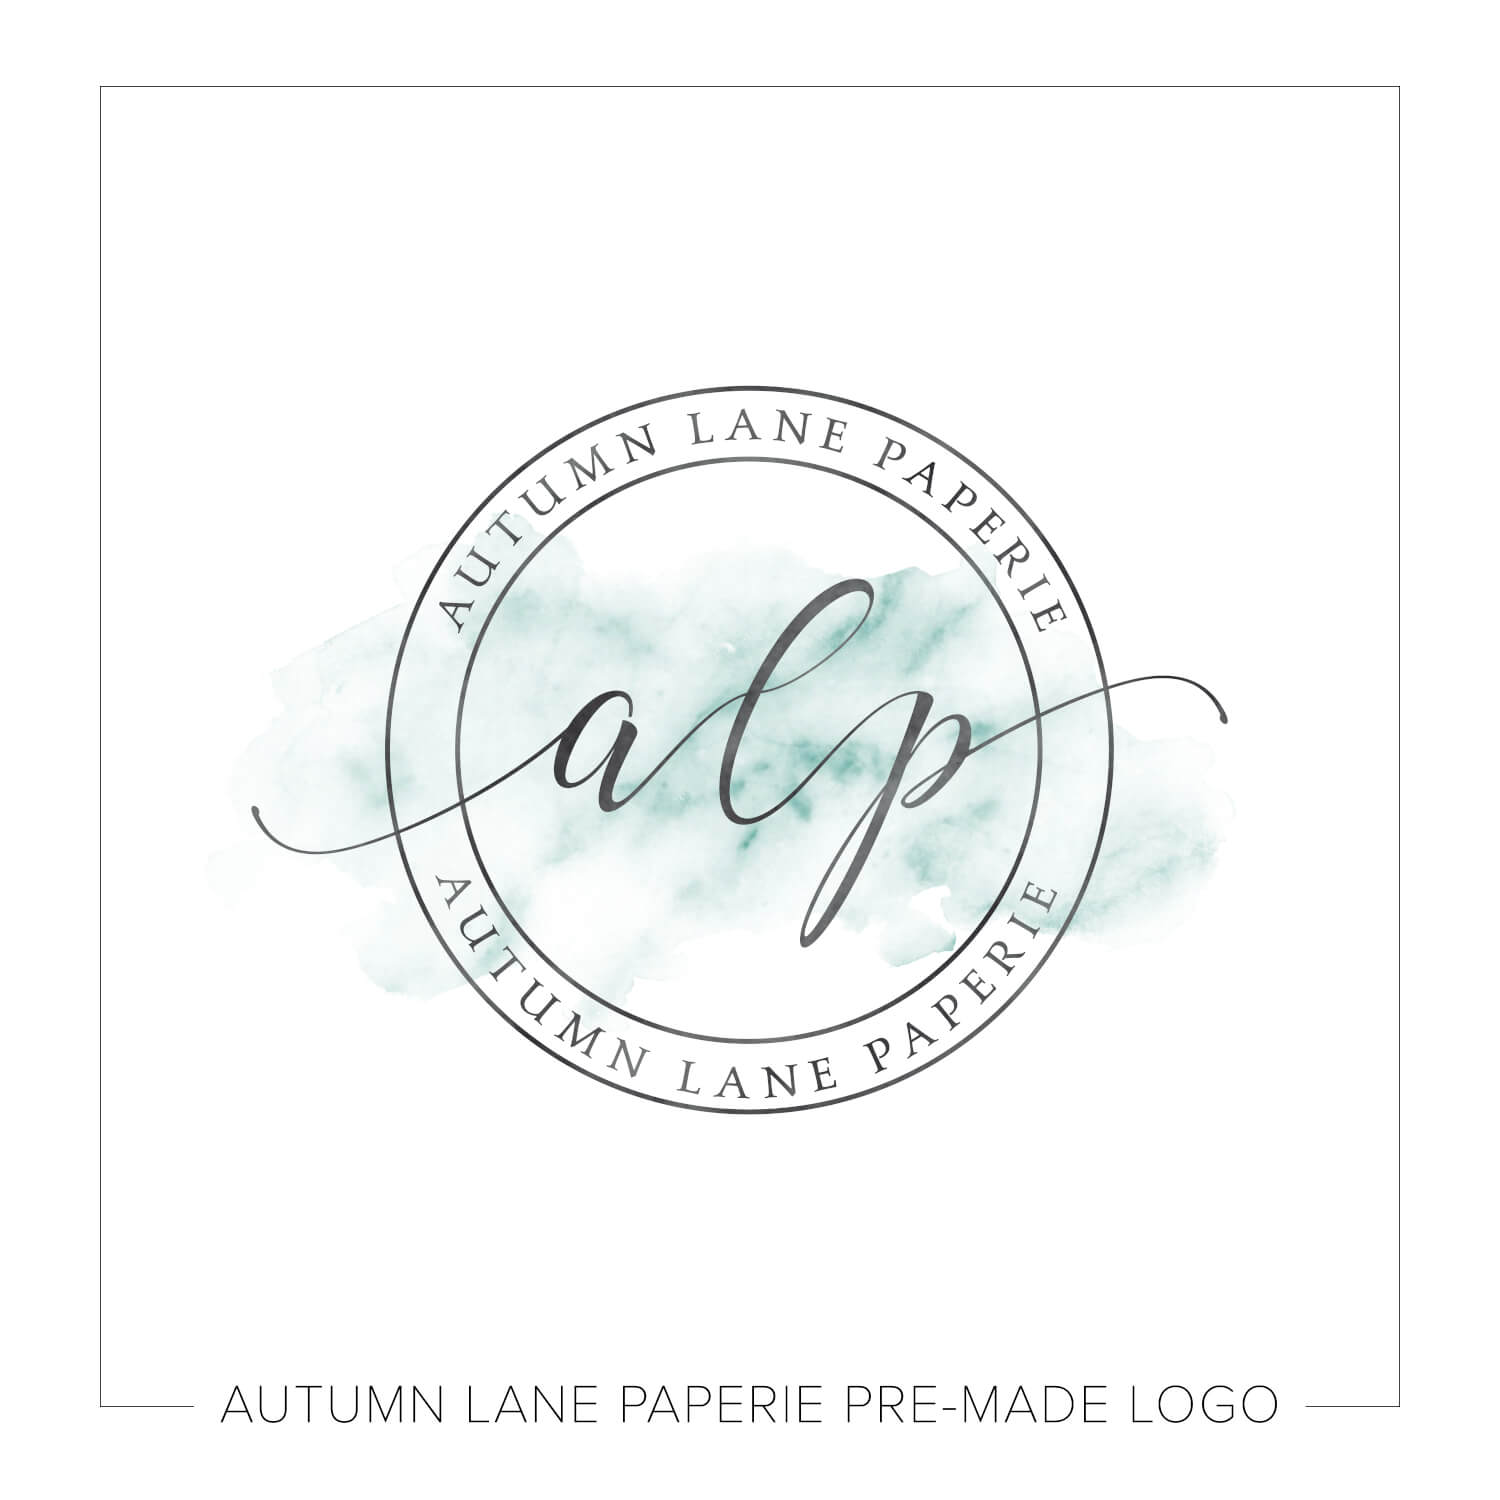 Leaning Initials Soft Watercolor Logo K11